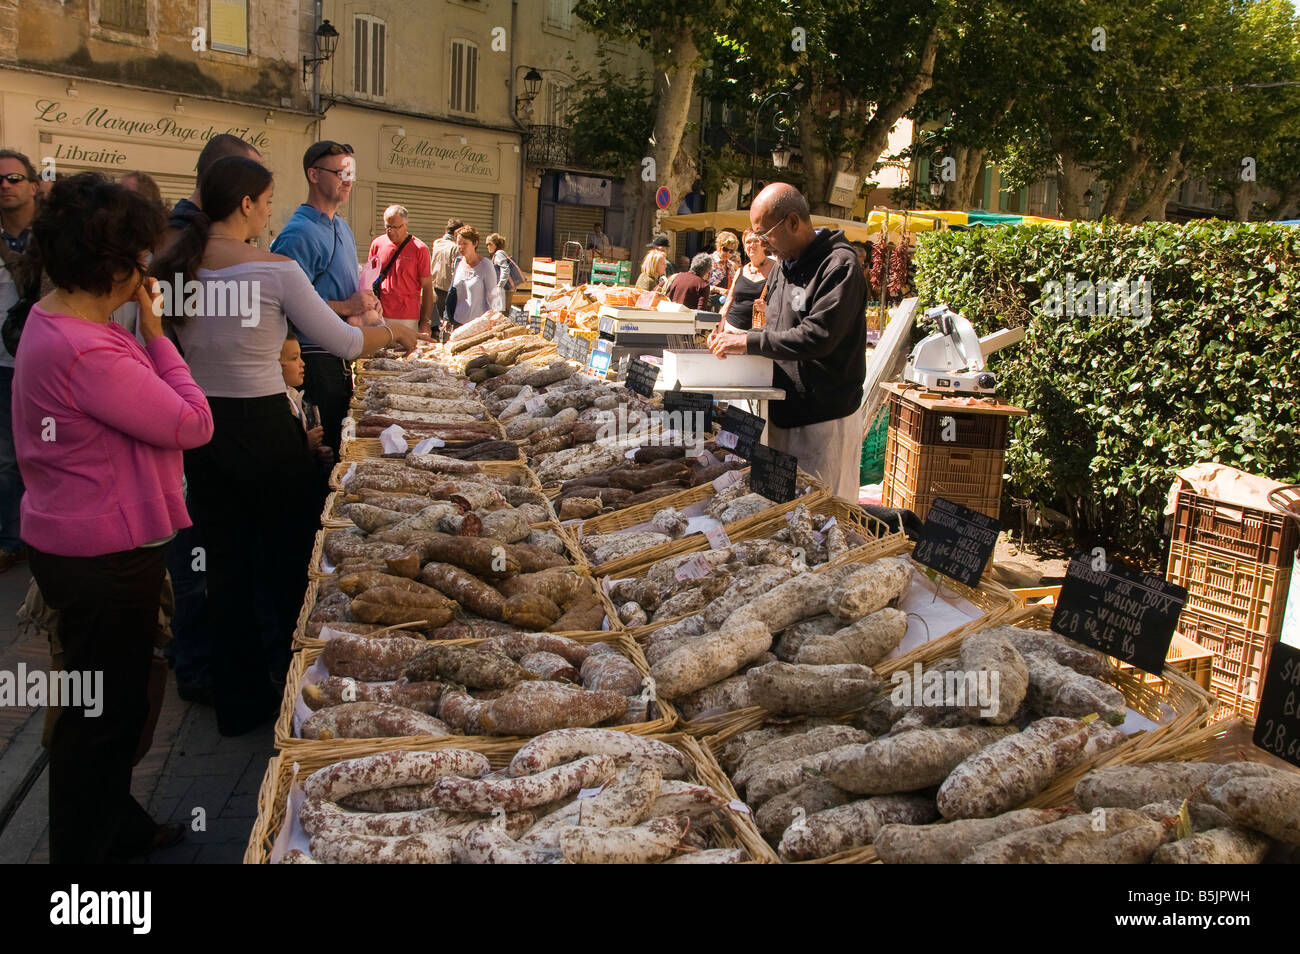 Saucisson On Sale At The Sunday Market In L Isle Sur La Sorgue Vaucluse  Provence France